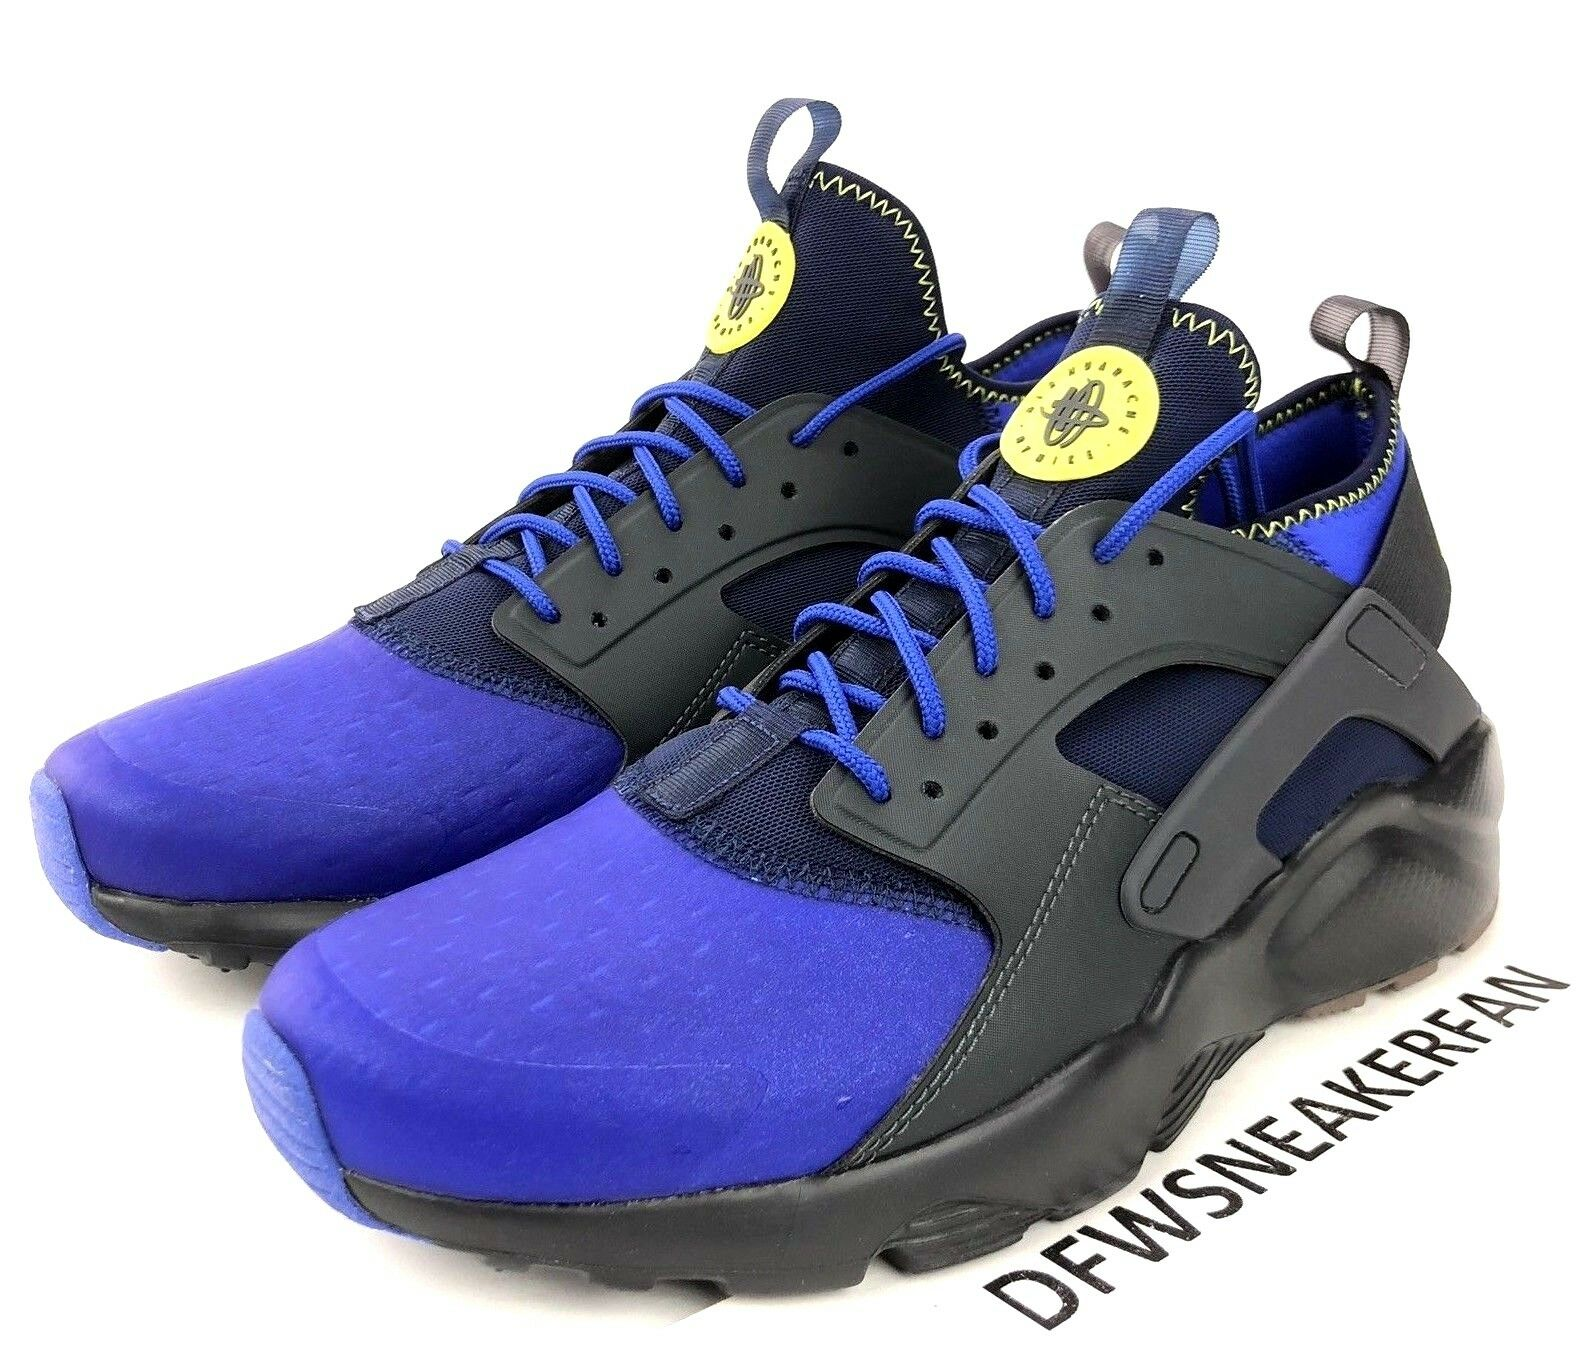 Nike Air Huarache Run Ultra SE Men's Size 10.5 Anthracite Para blueee 875841-001